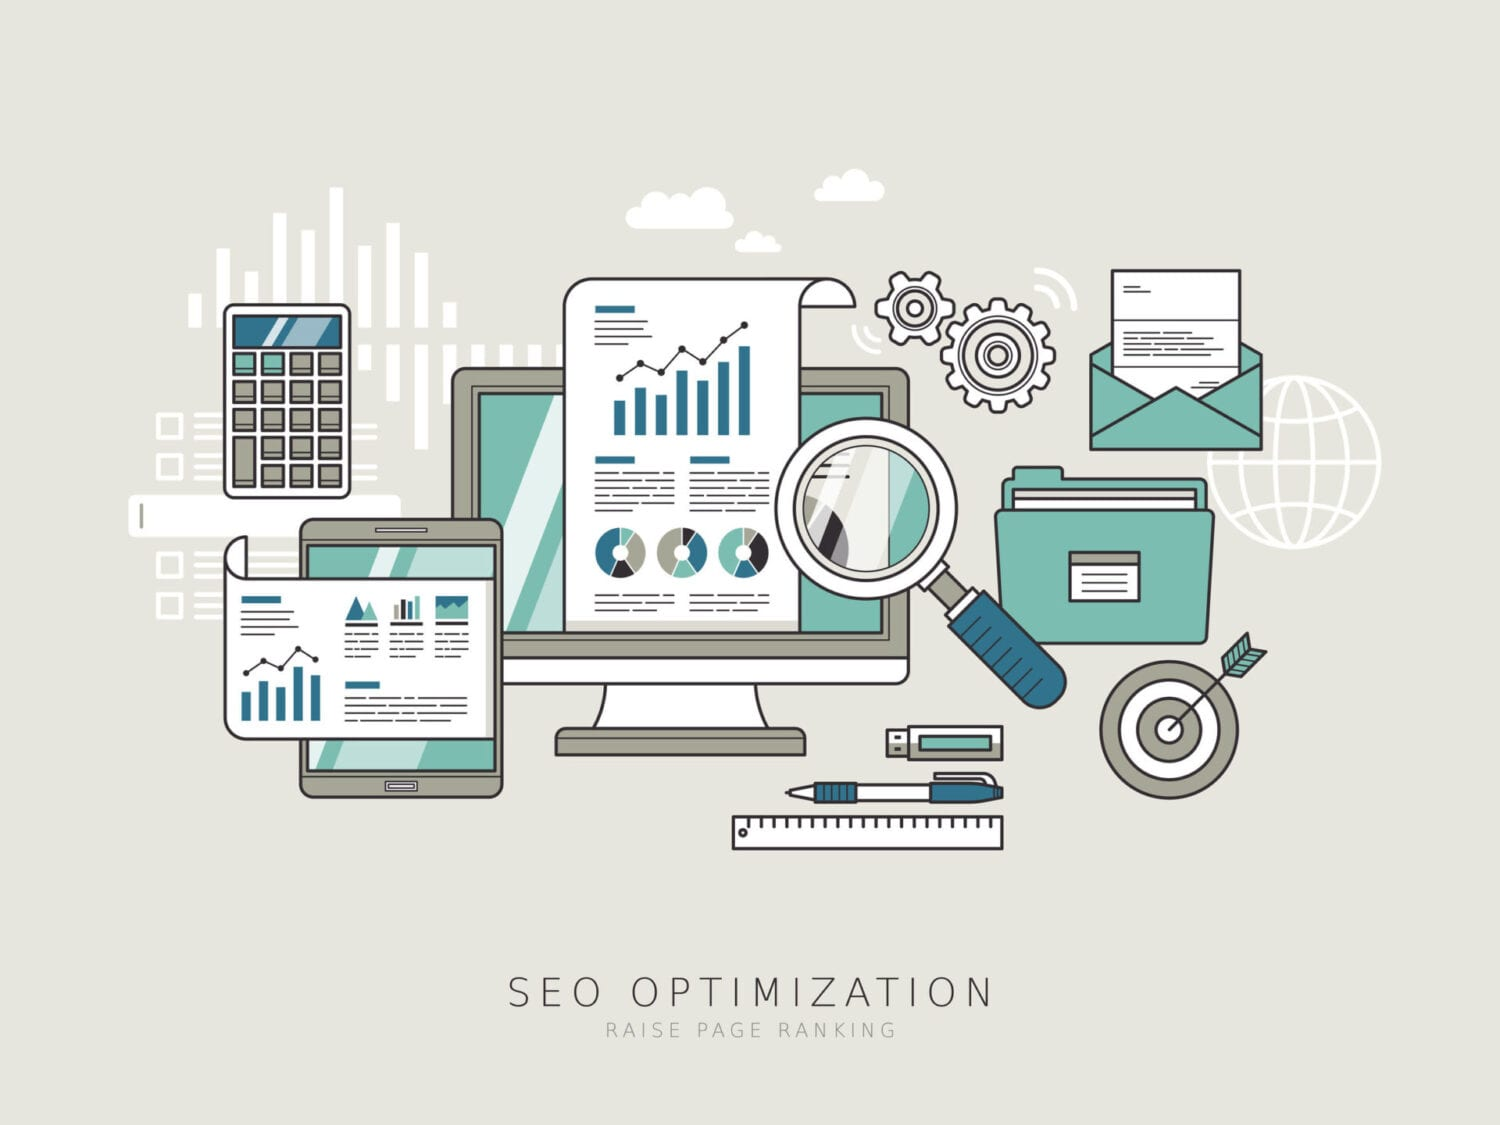 SEO optimization concept